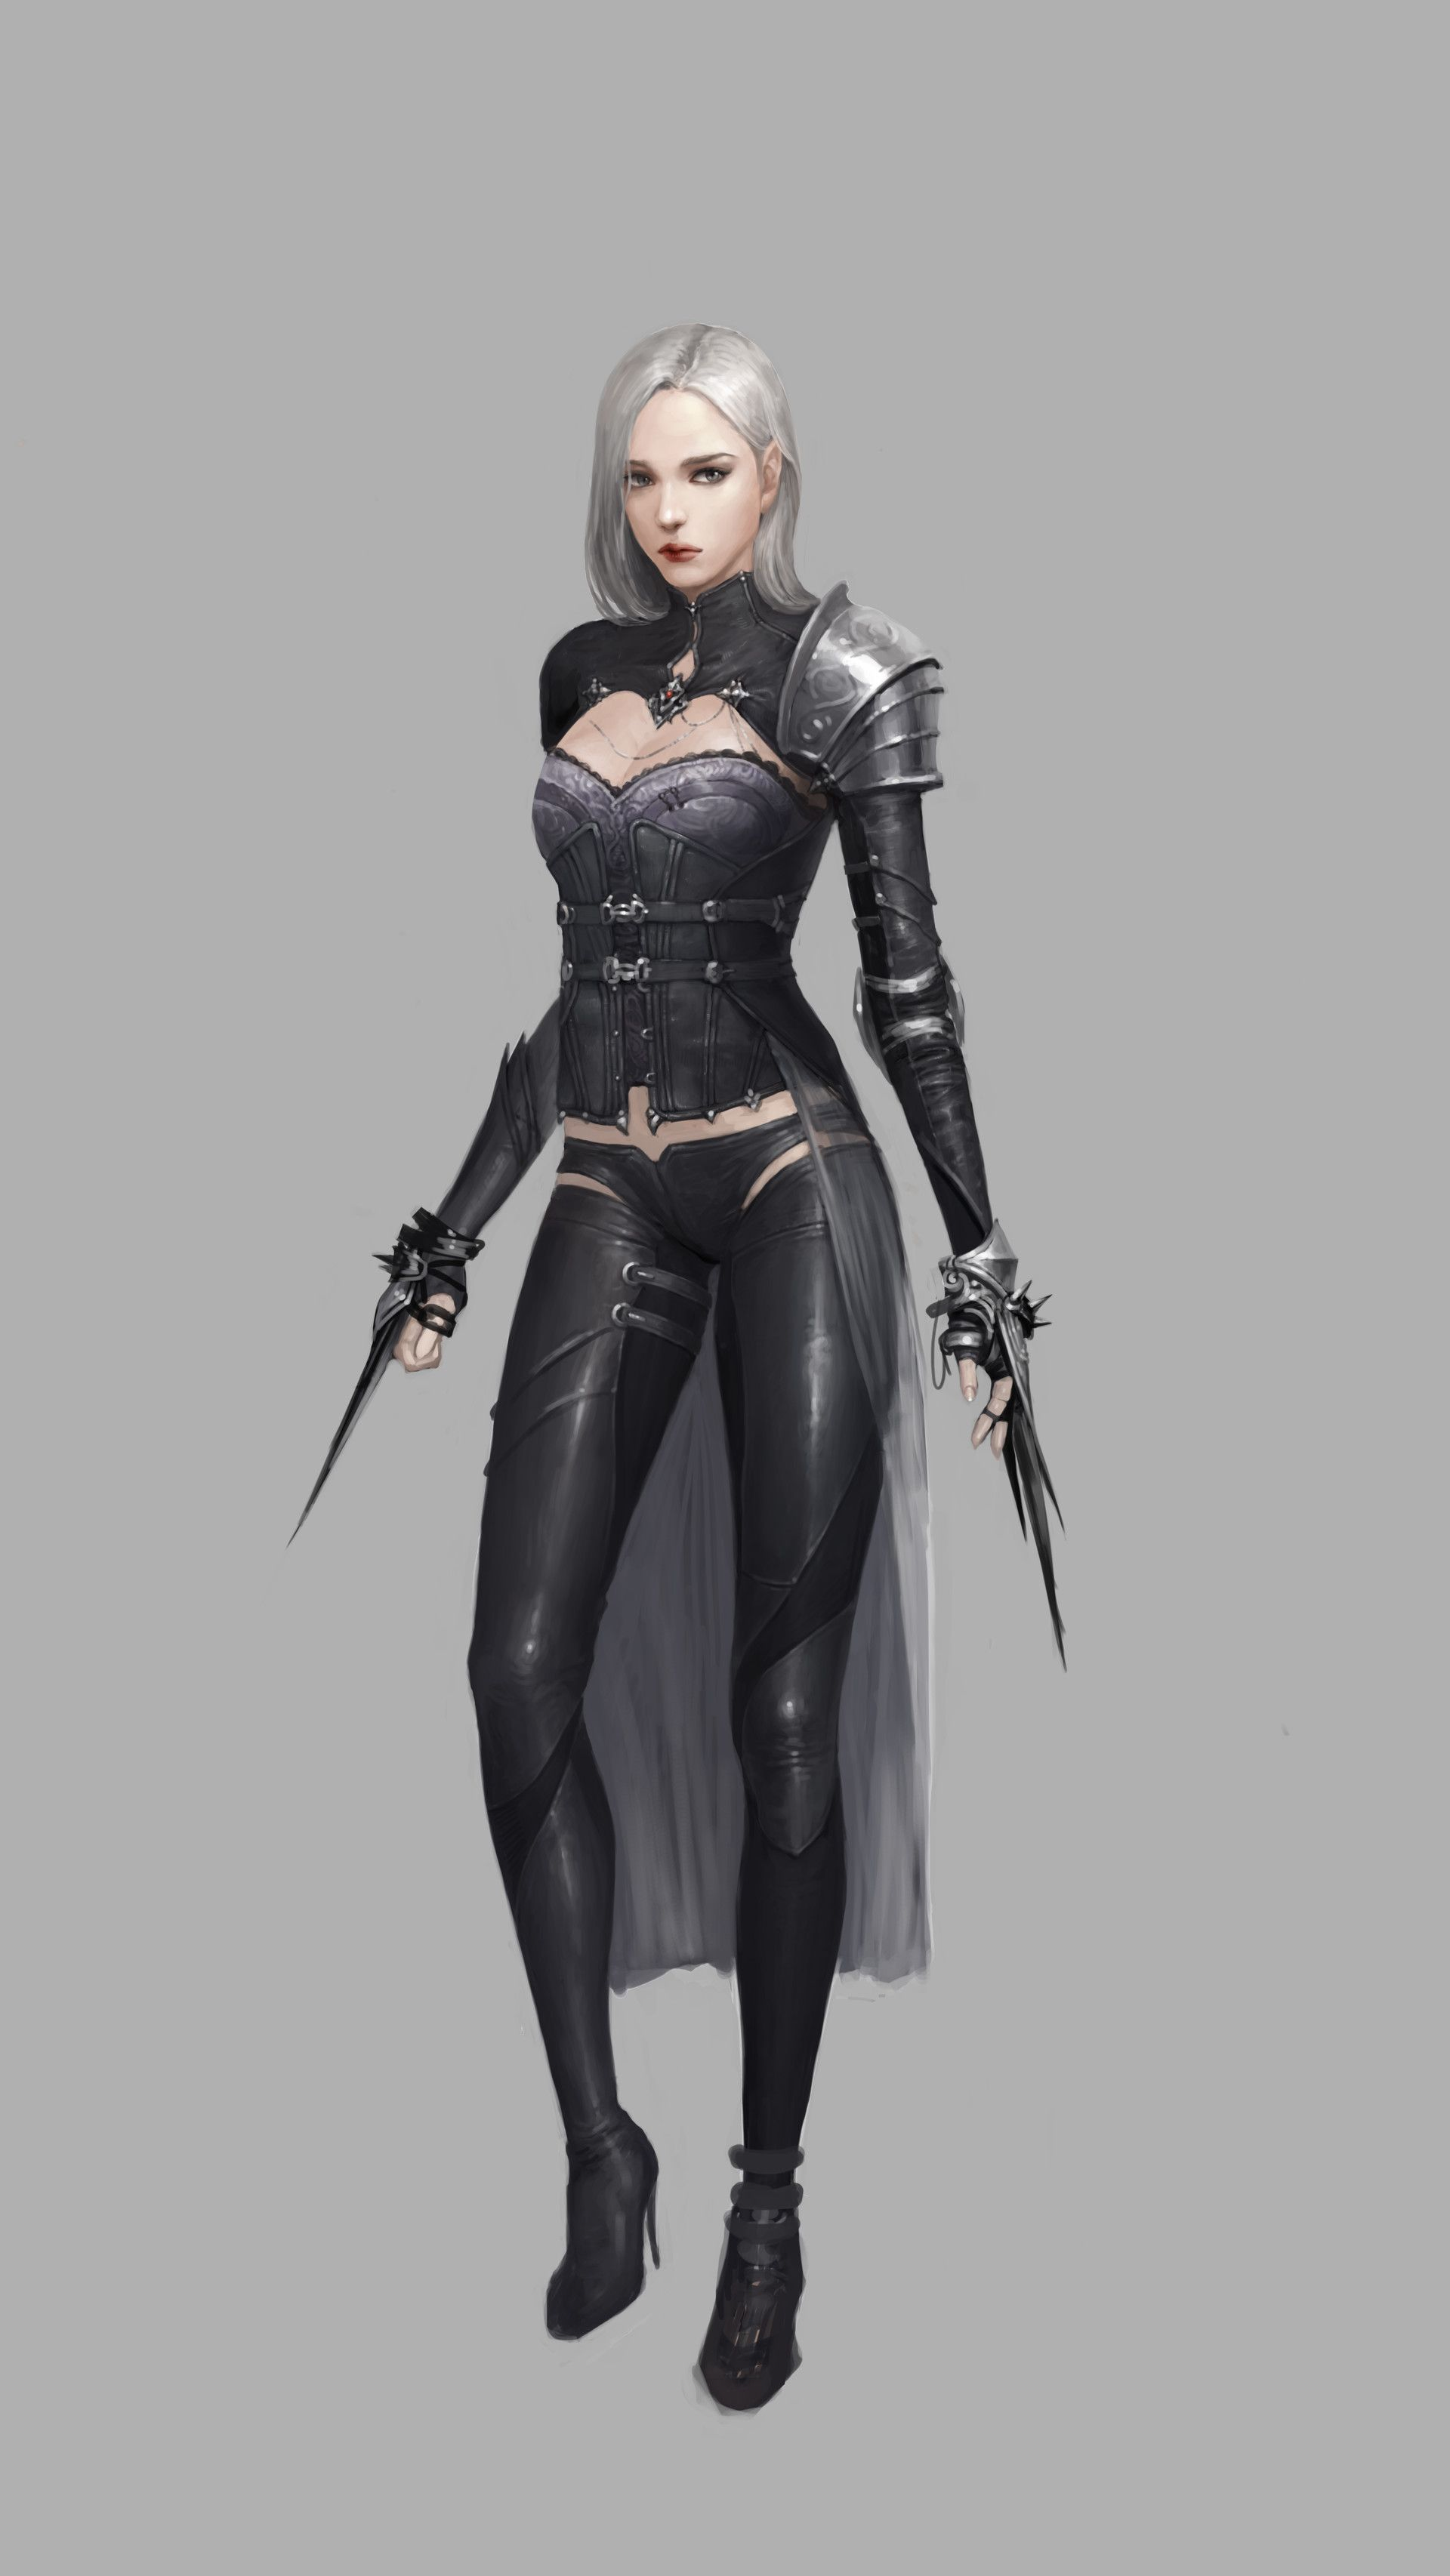 anime assassin characters - 736×1307